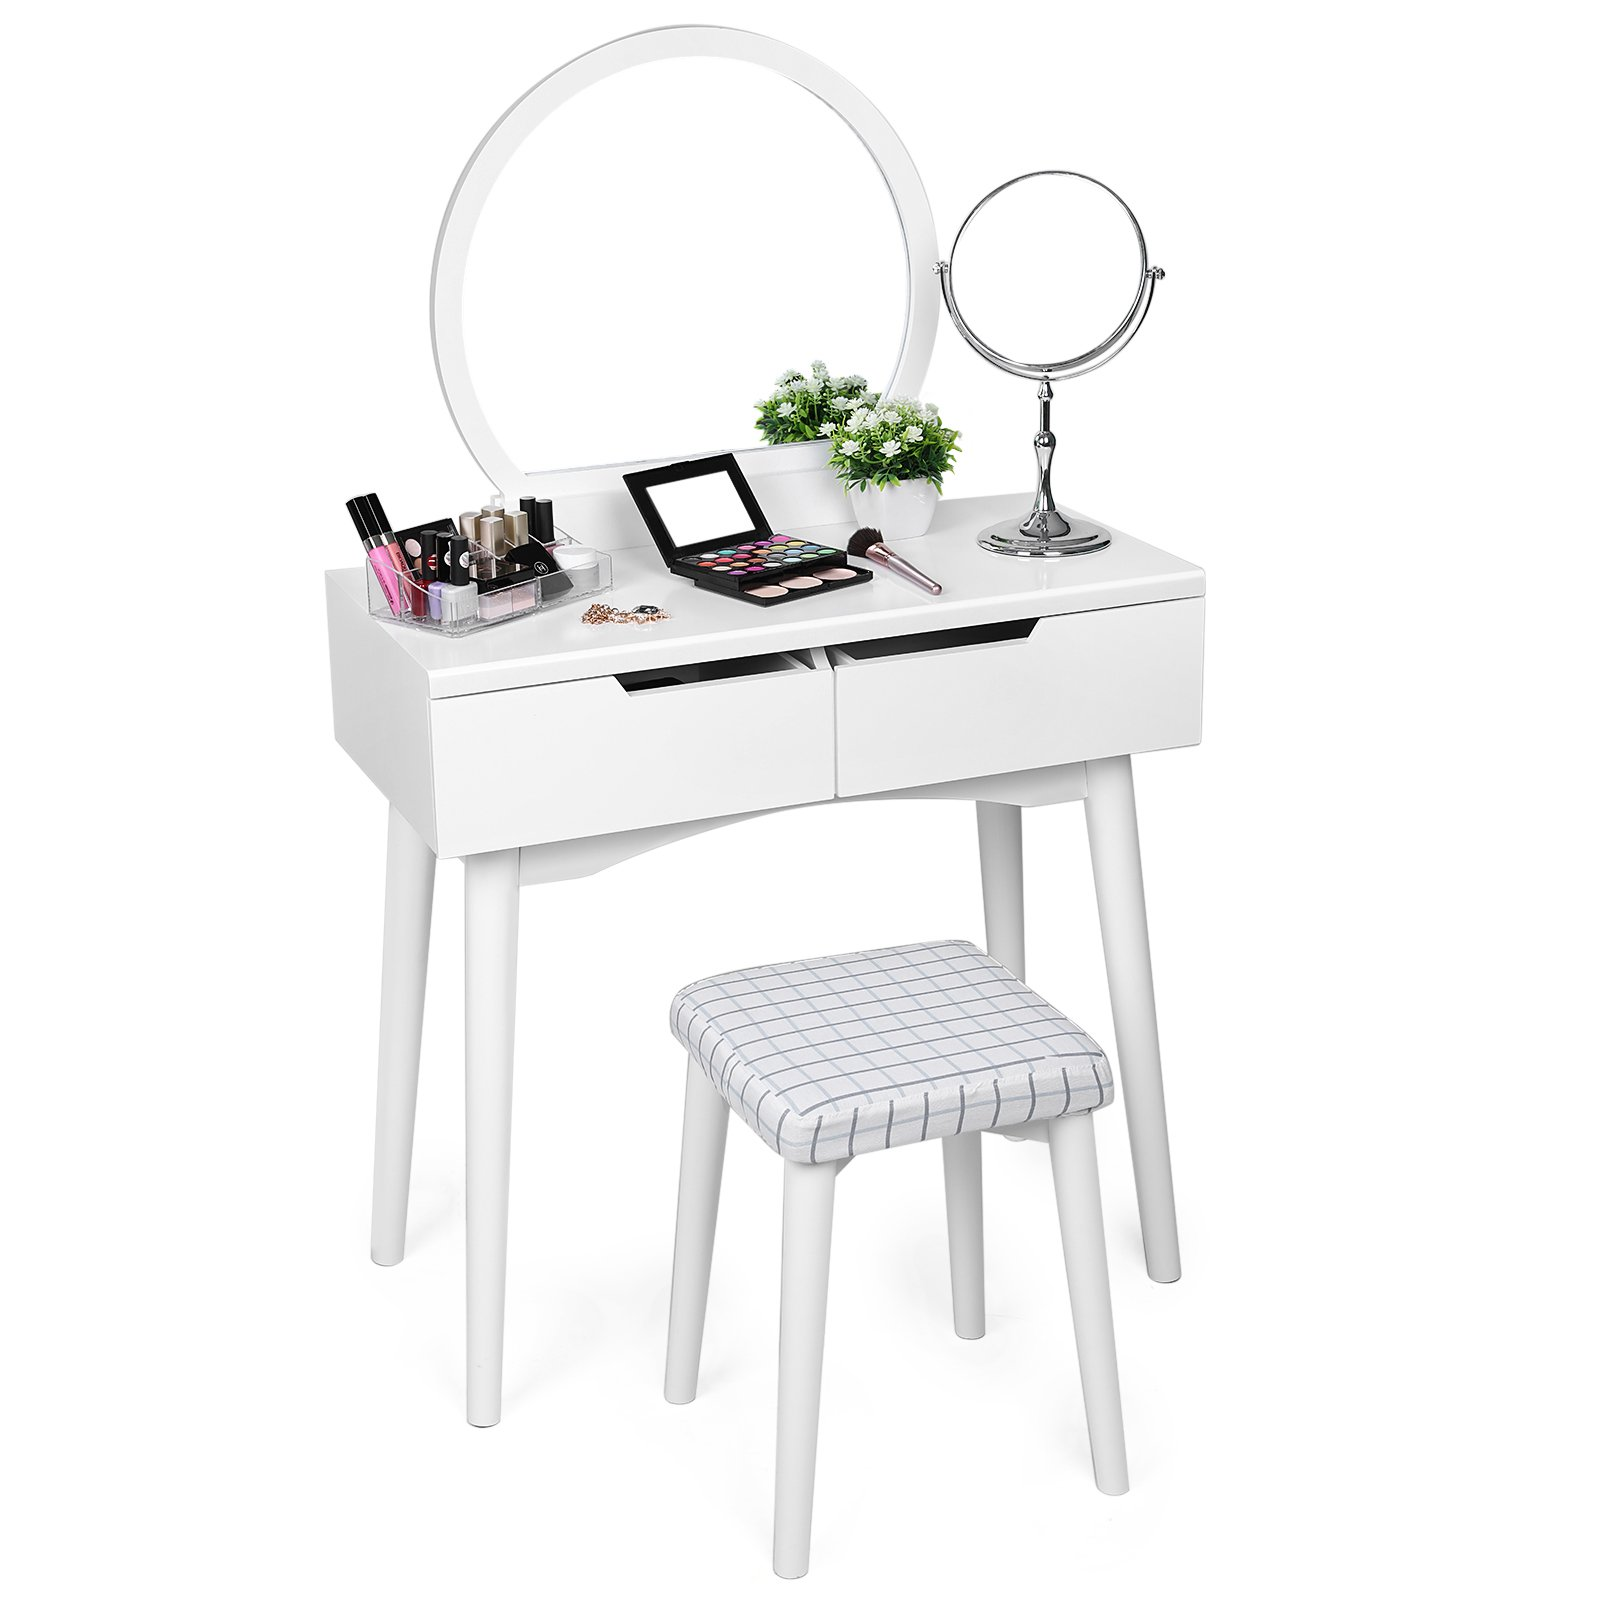 SONGMICS Vanity Table Set with Mirror 2 Large Sliding Drawers Makeup Dressing Table with Cushioned Stool White URDT11W by SONGMICS